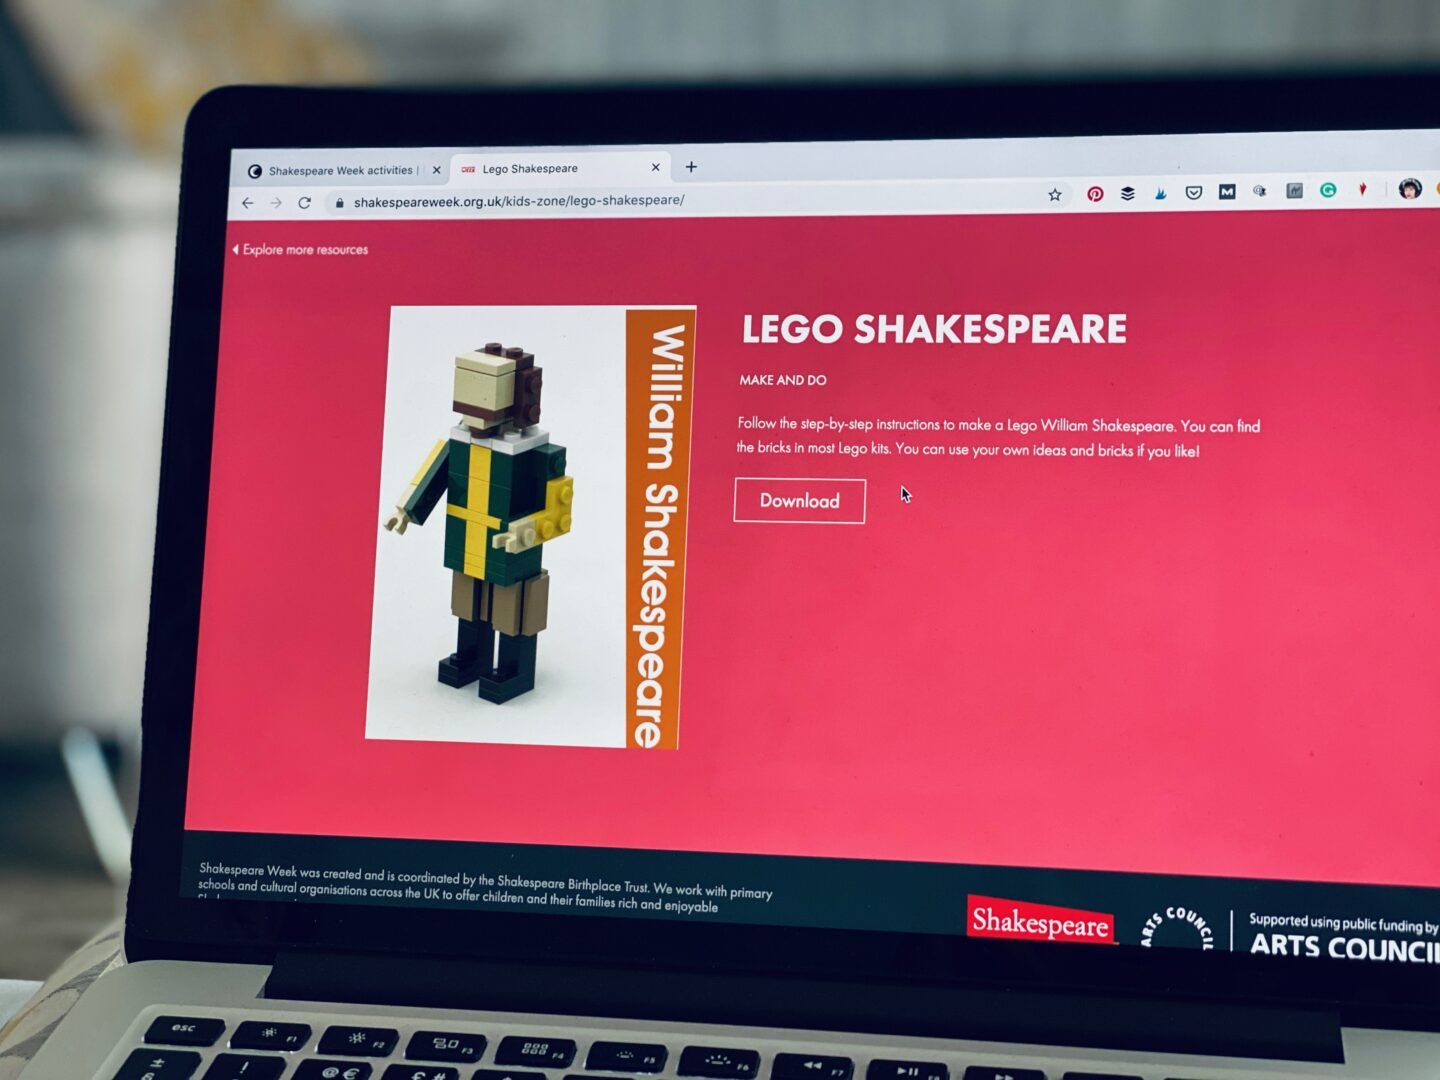 AD: Finding free arts and culture activities for kids to do at home with Fantastic for Families - Lego Shakespeare